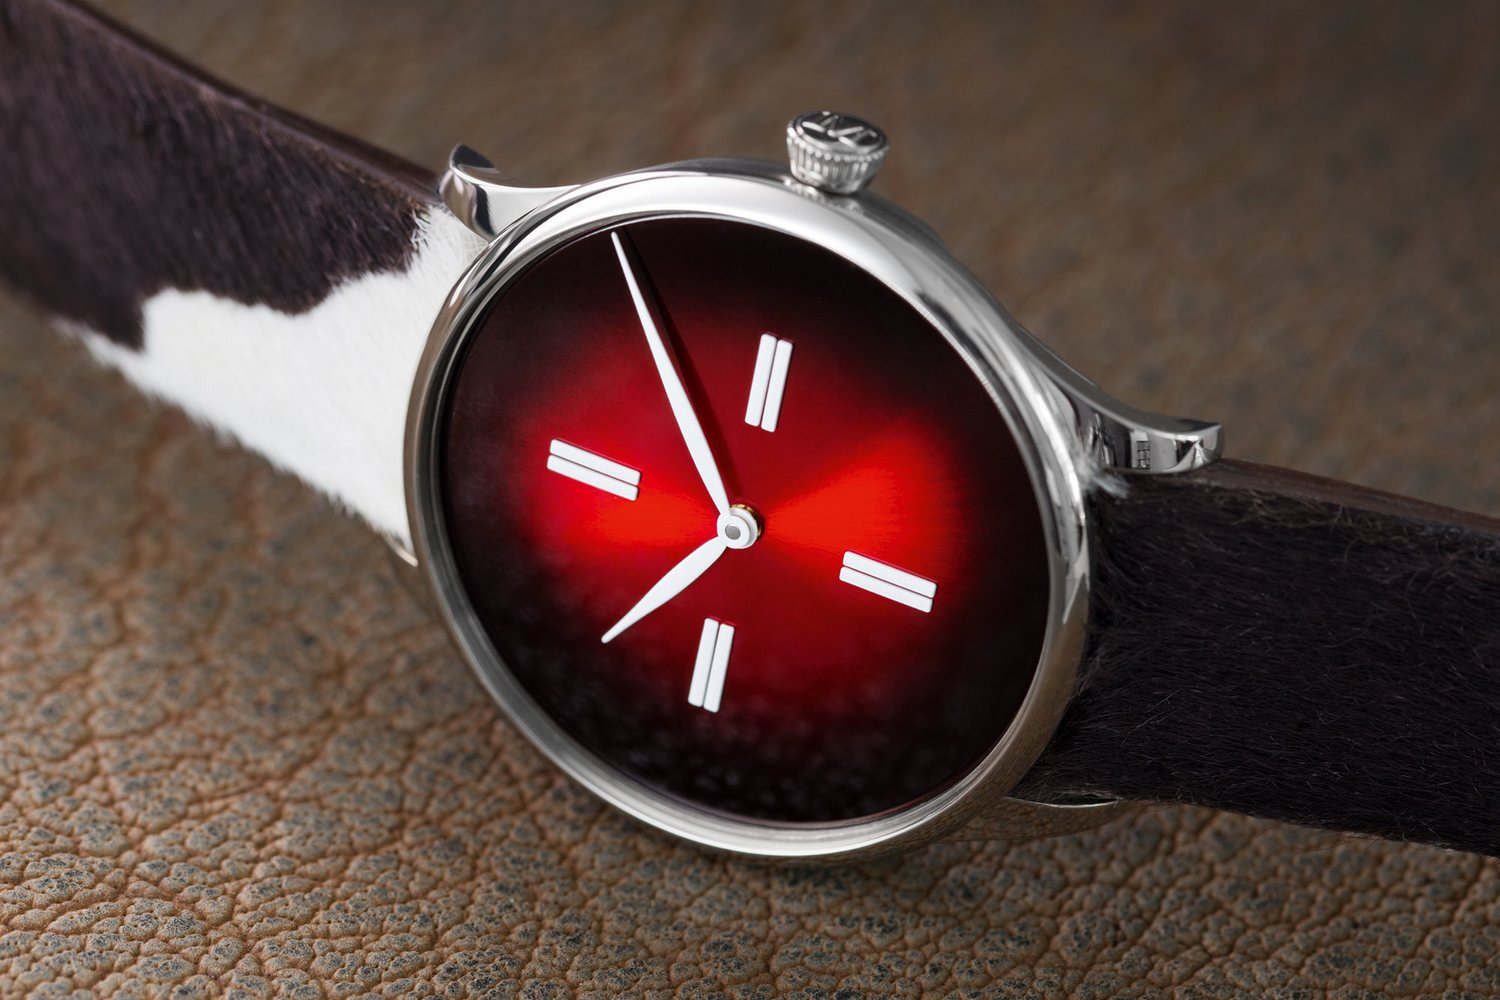 The Venturer Swiss Mad, the cheese-free version of this special watch.